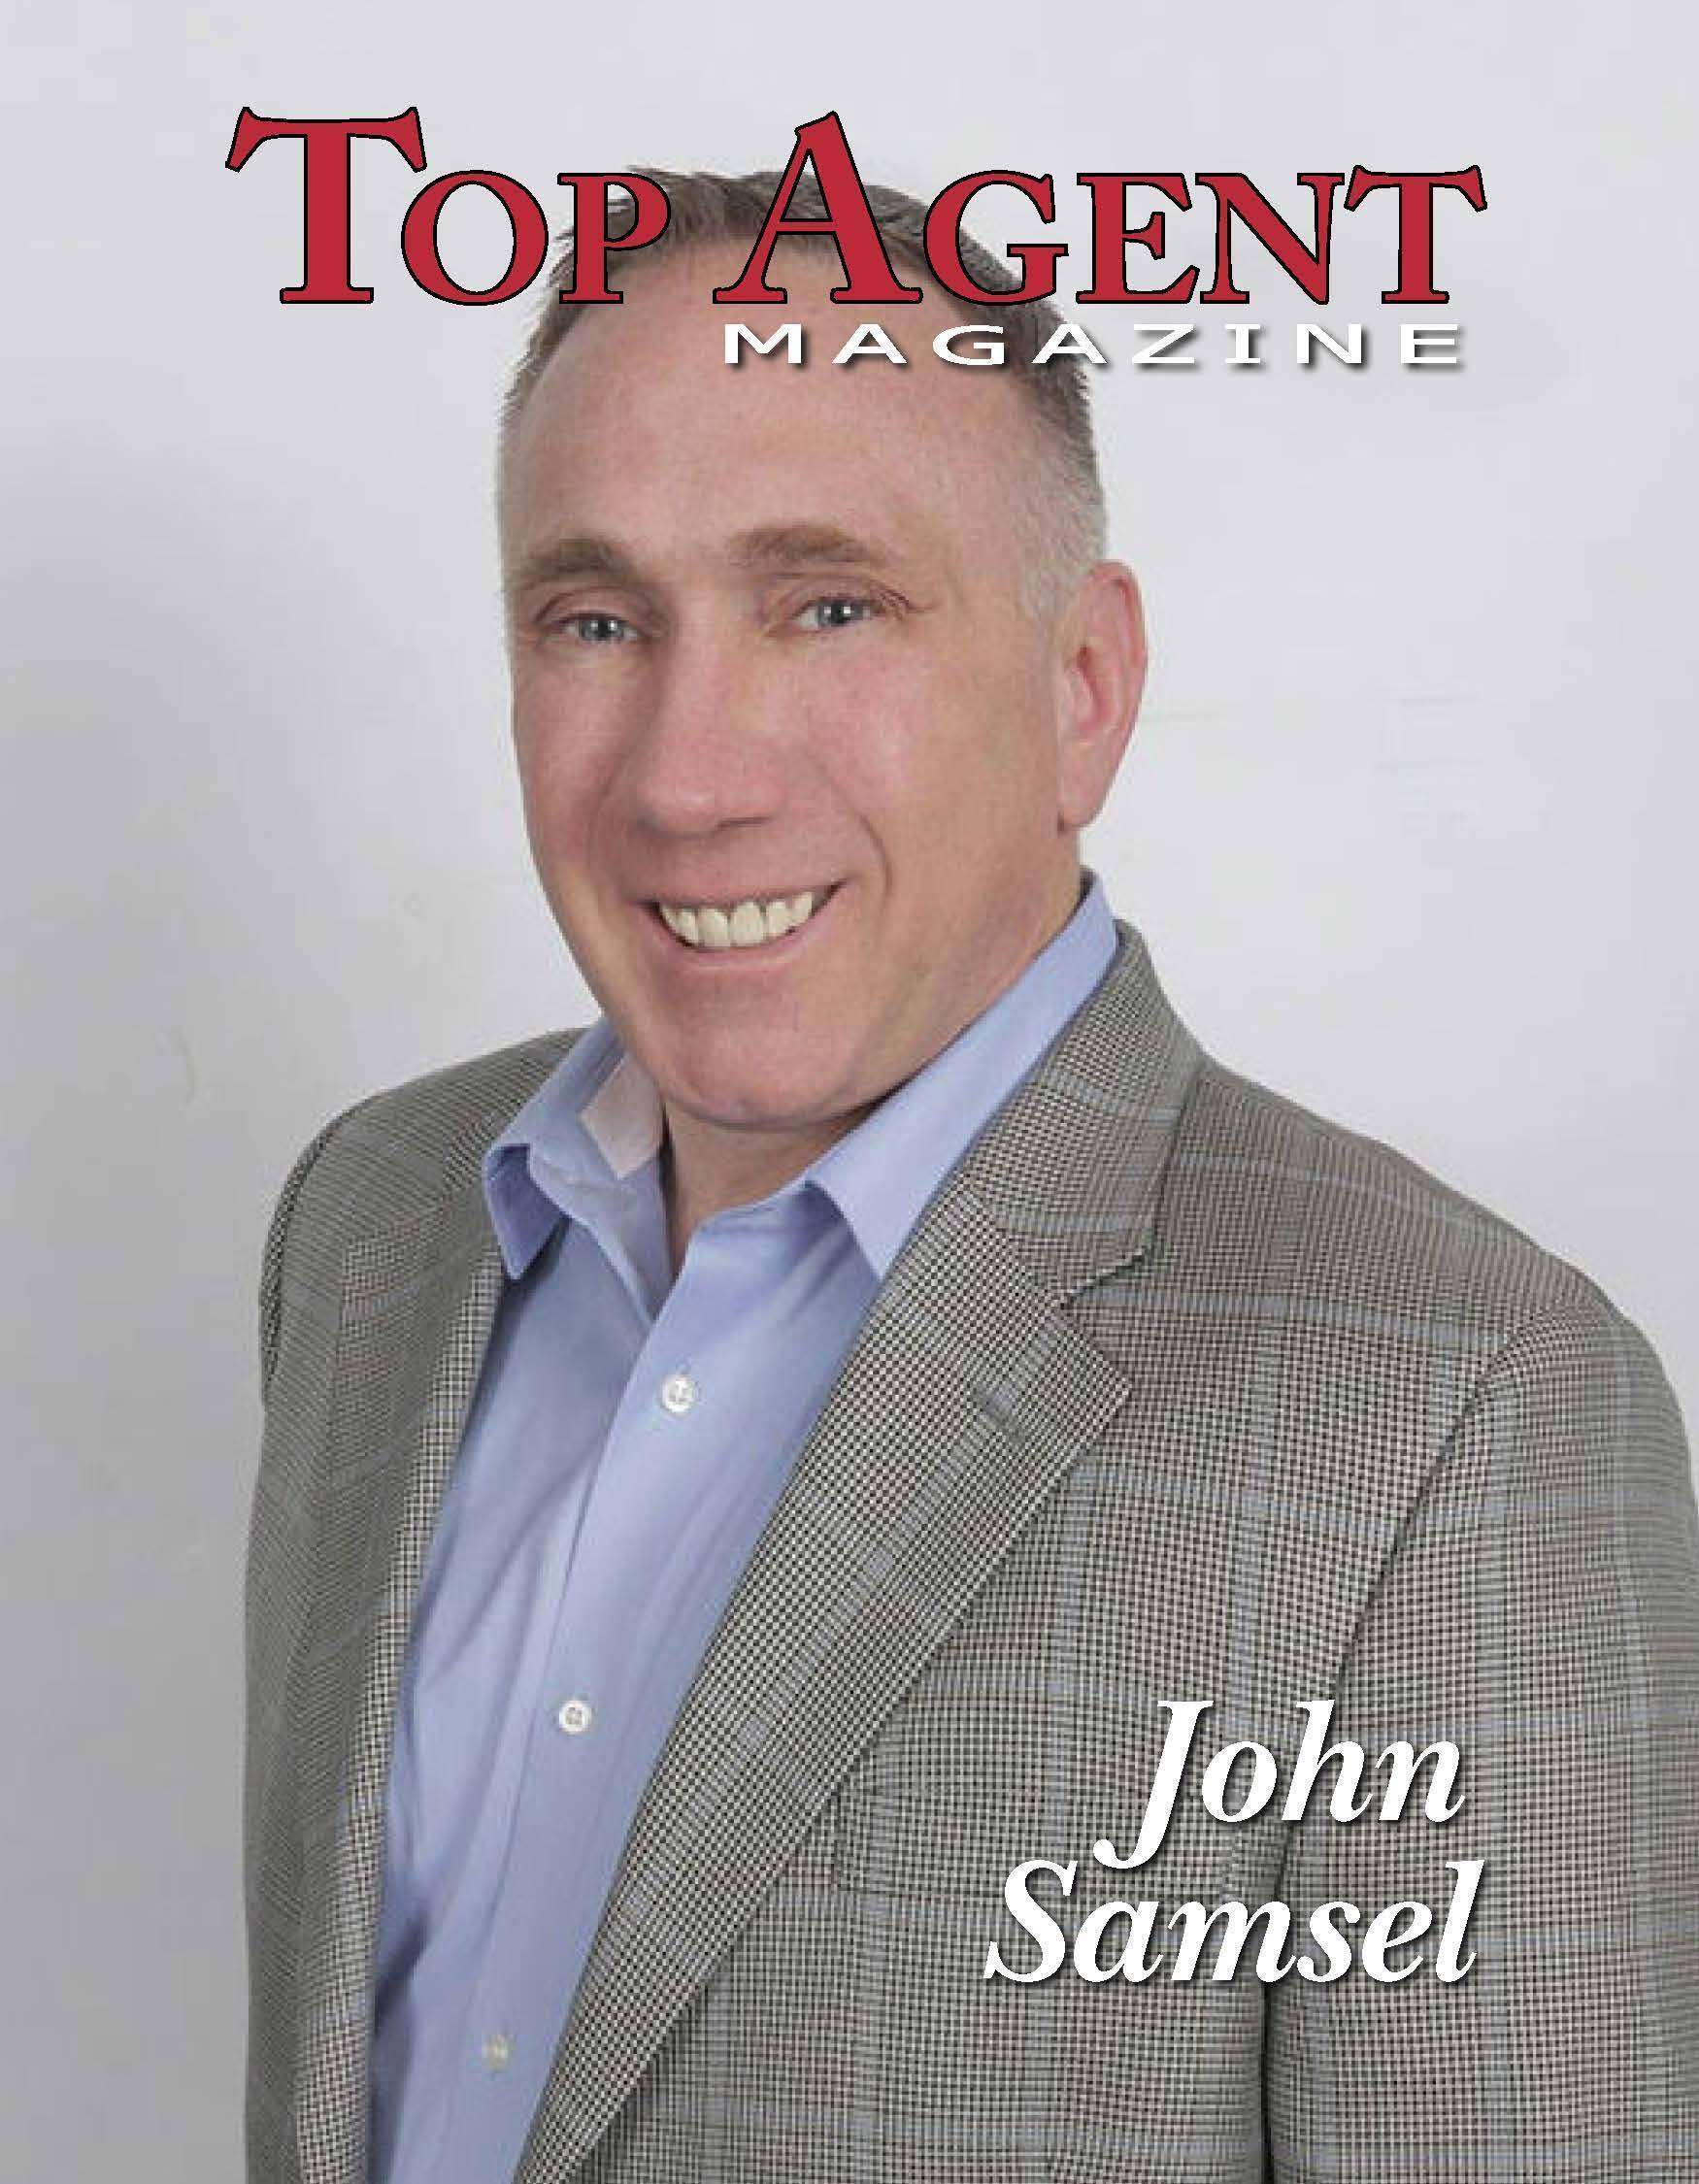 Top Agent Magazine - A_Page_1.jpg